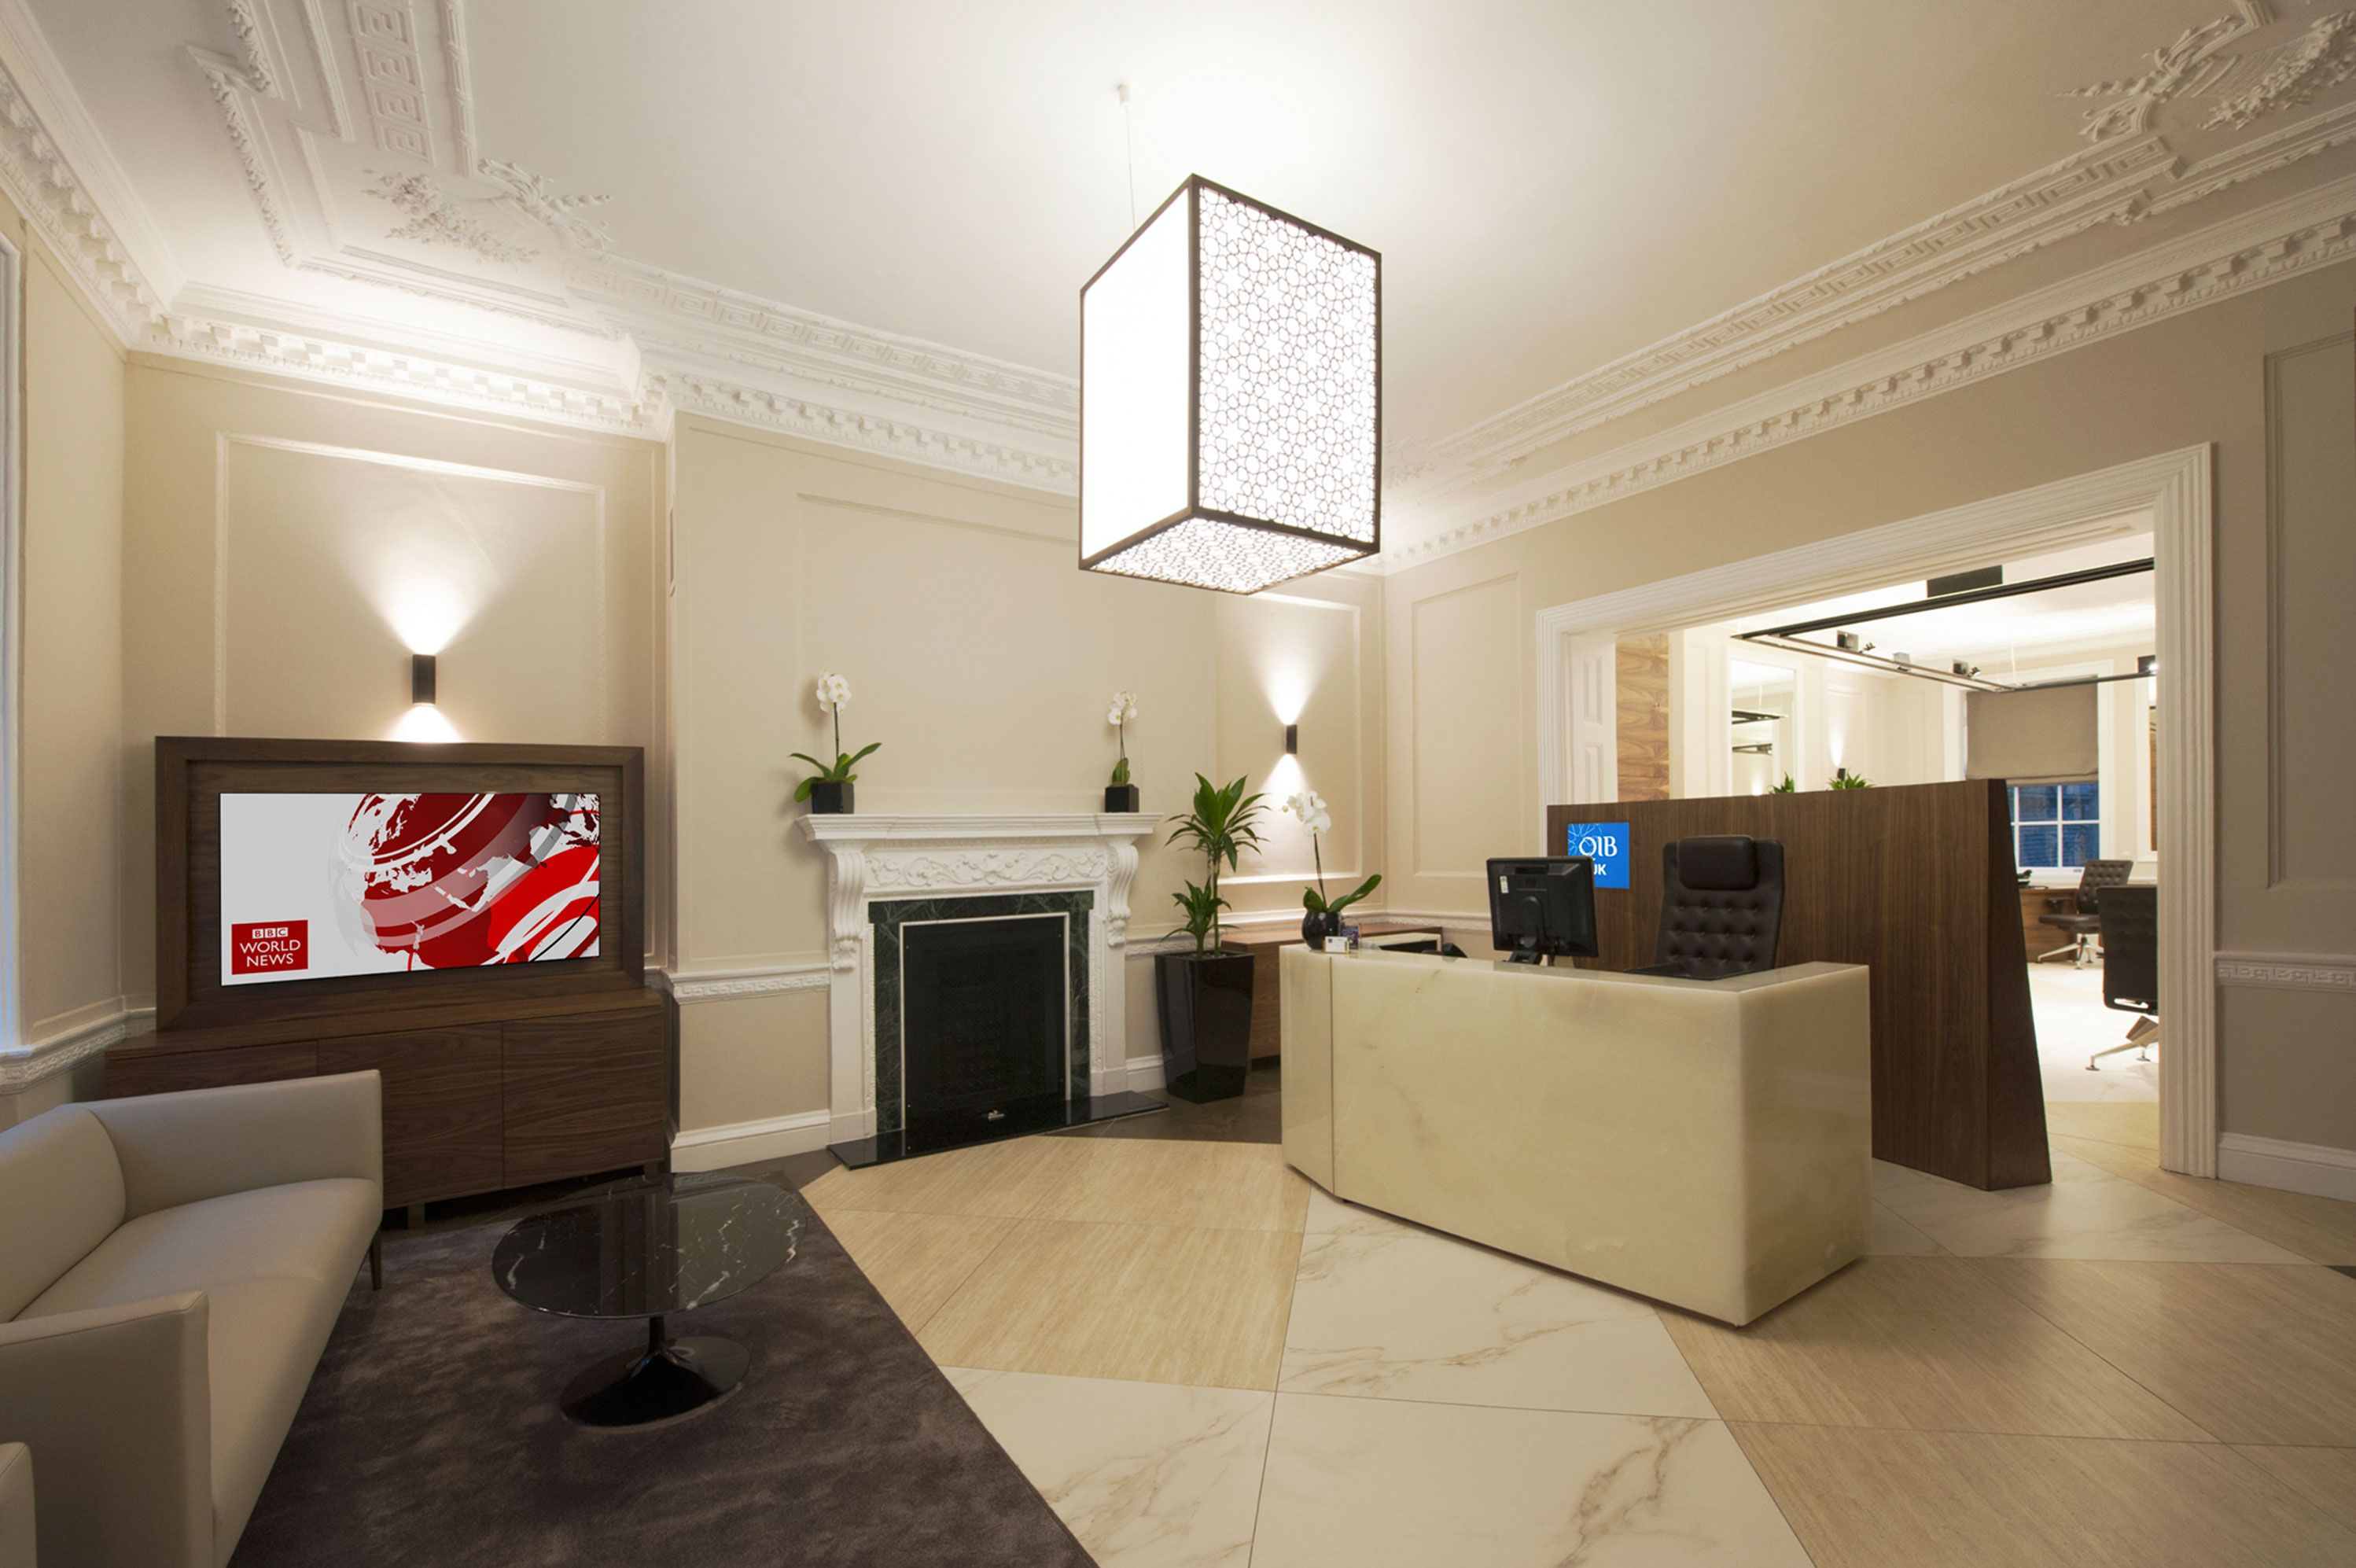 Qib uk qatar islamic bank london offices designed by for Interior design qatar